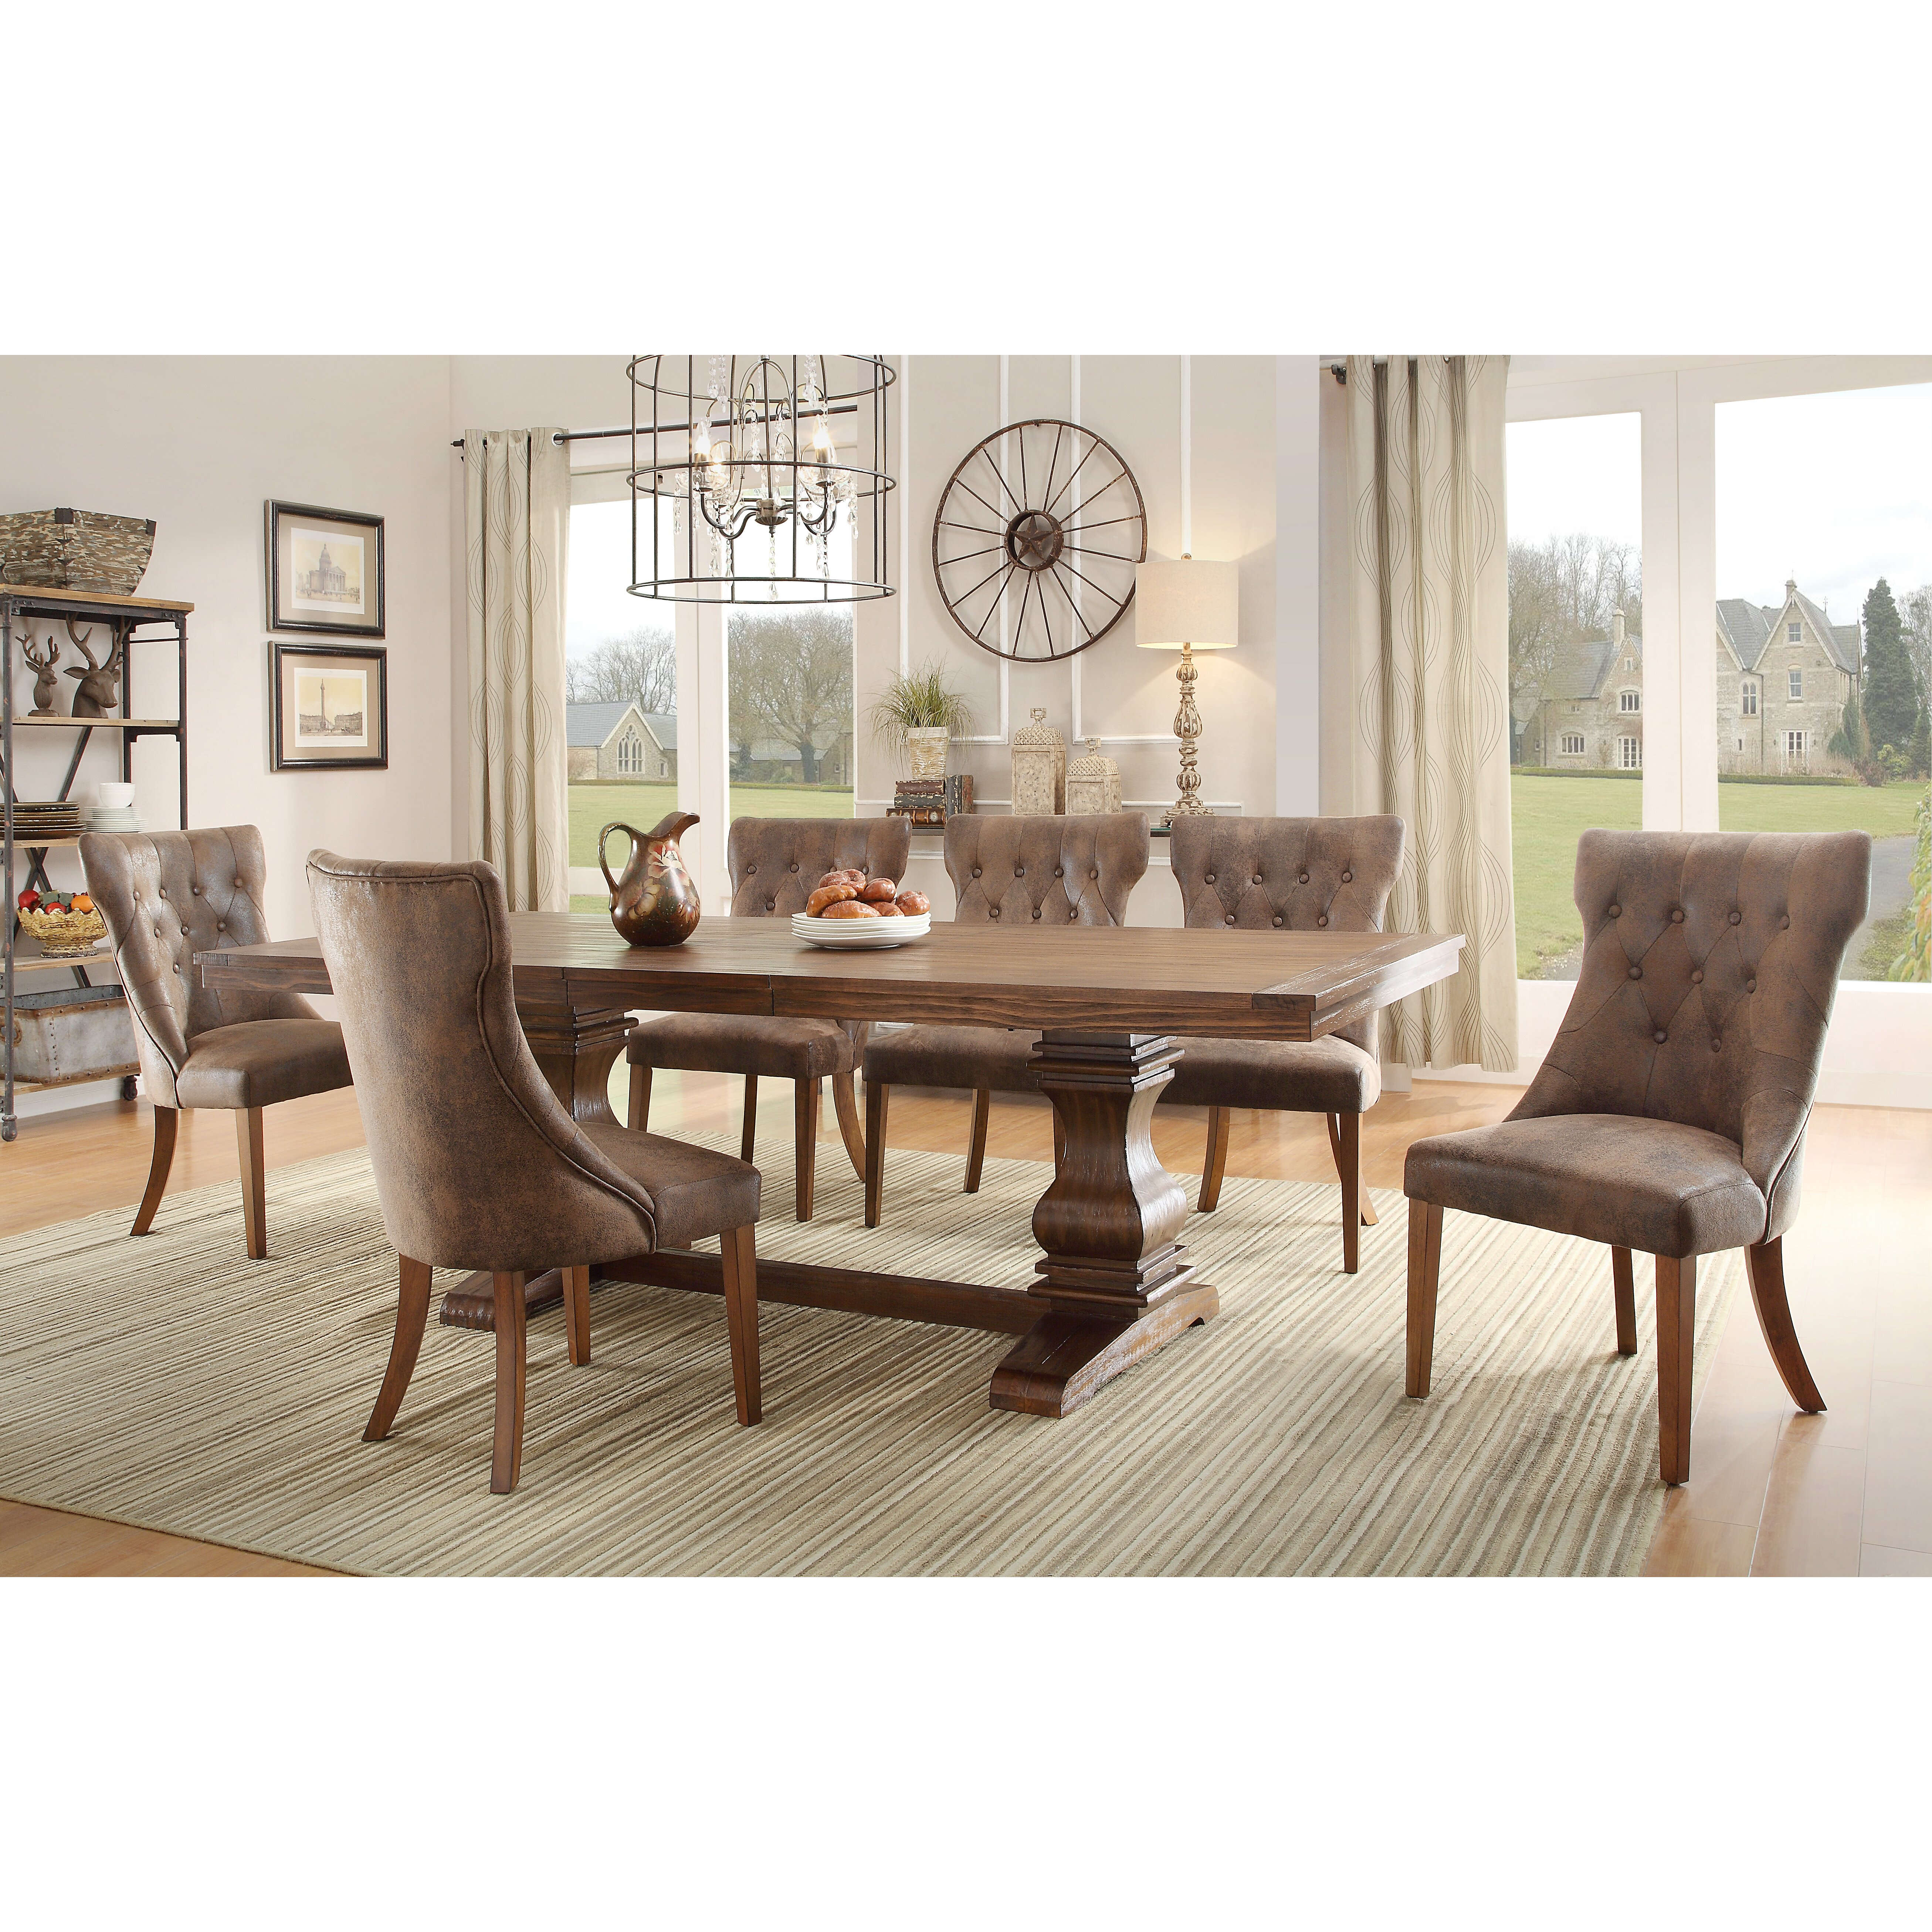 August grove elton extendable dining table reviews wayfair for Wayfair dining table